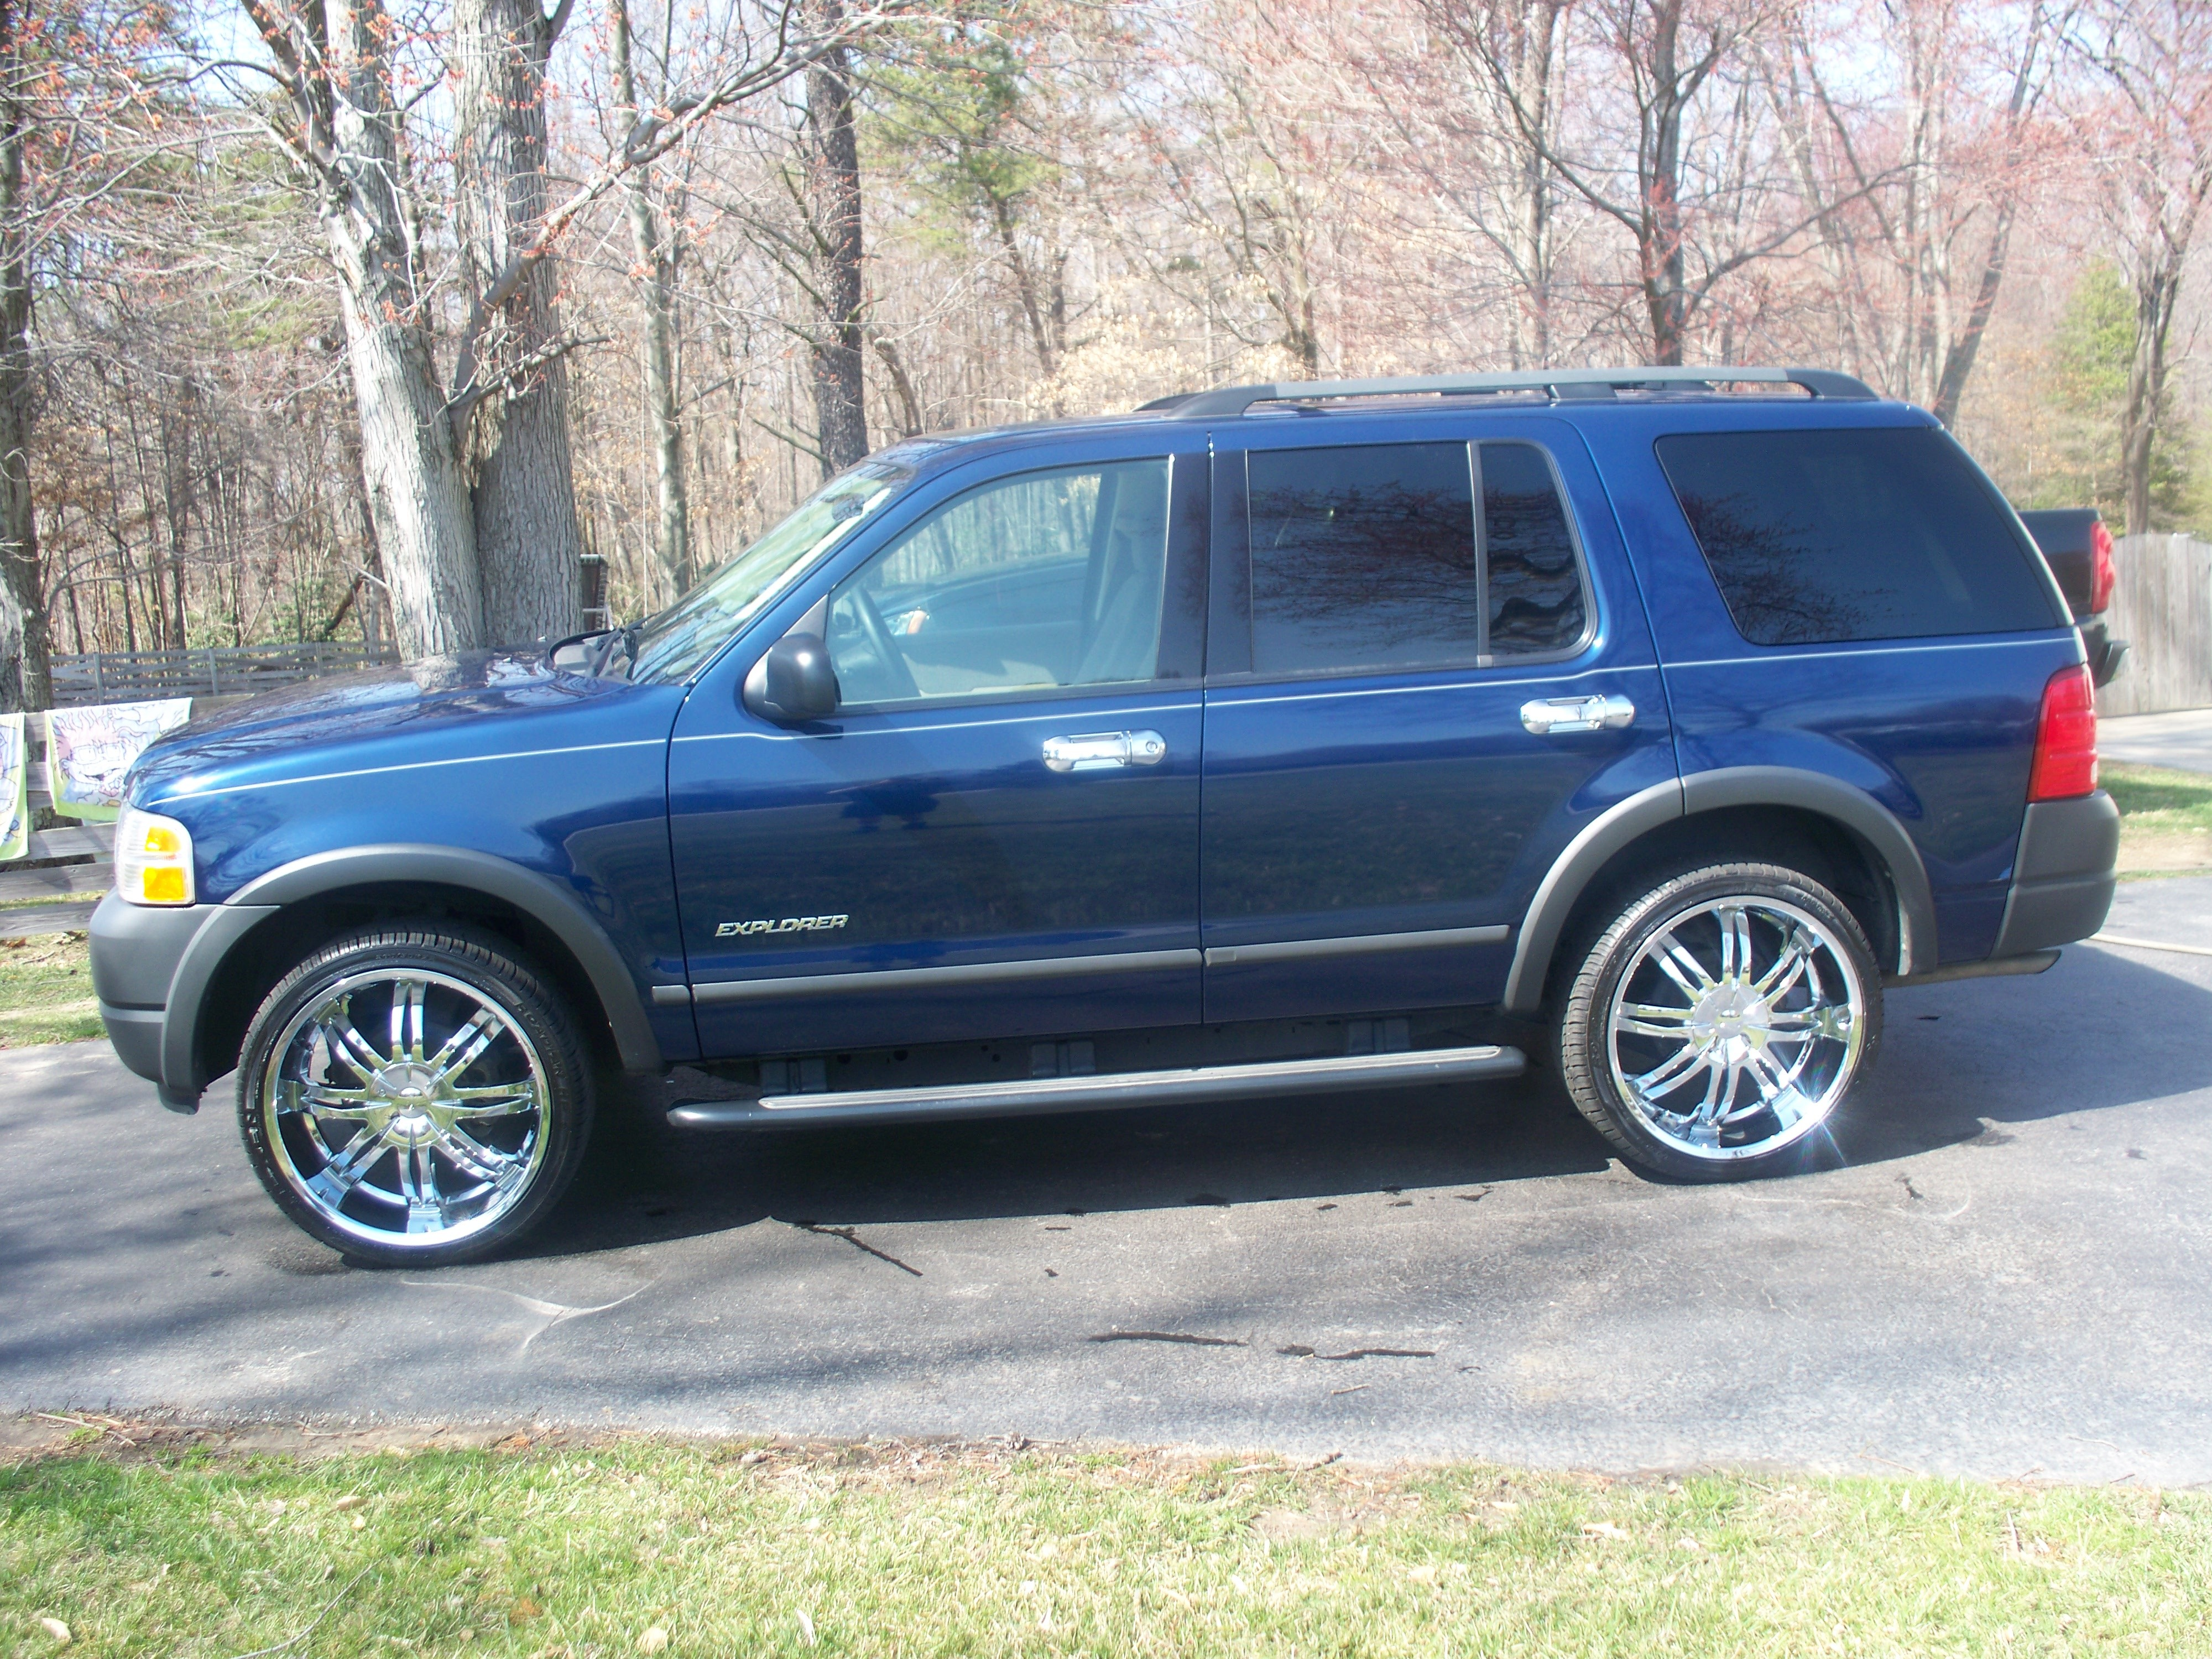 mitchsexplorer 2004 ford explorer specs photos. Black Bedroom Furniture Sets. Home Design Ideas